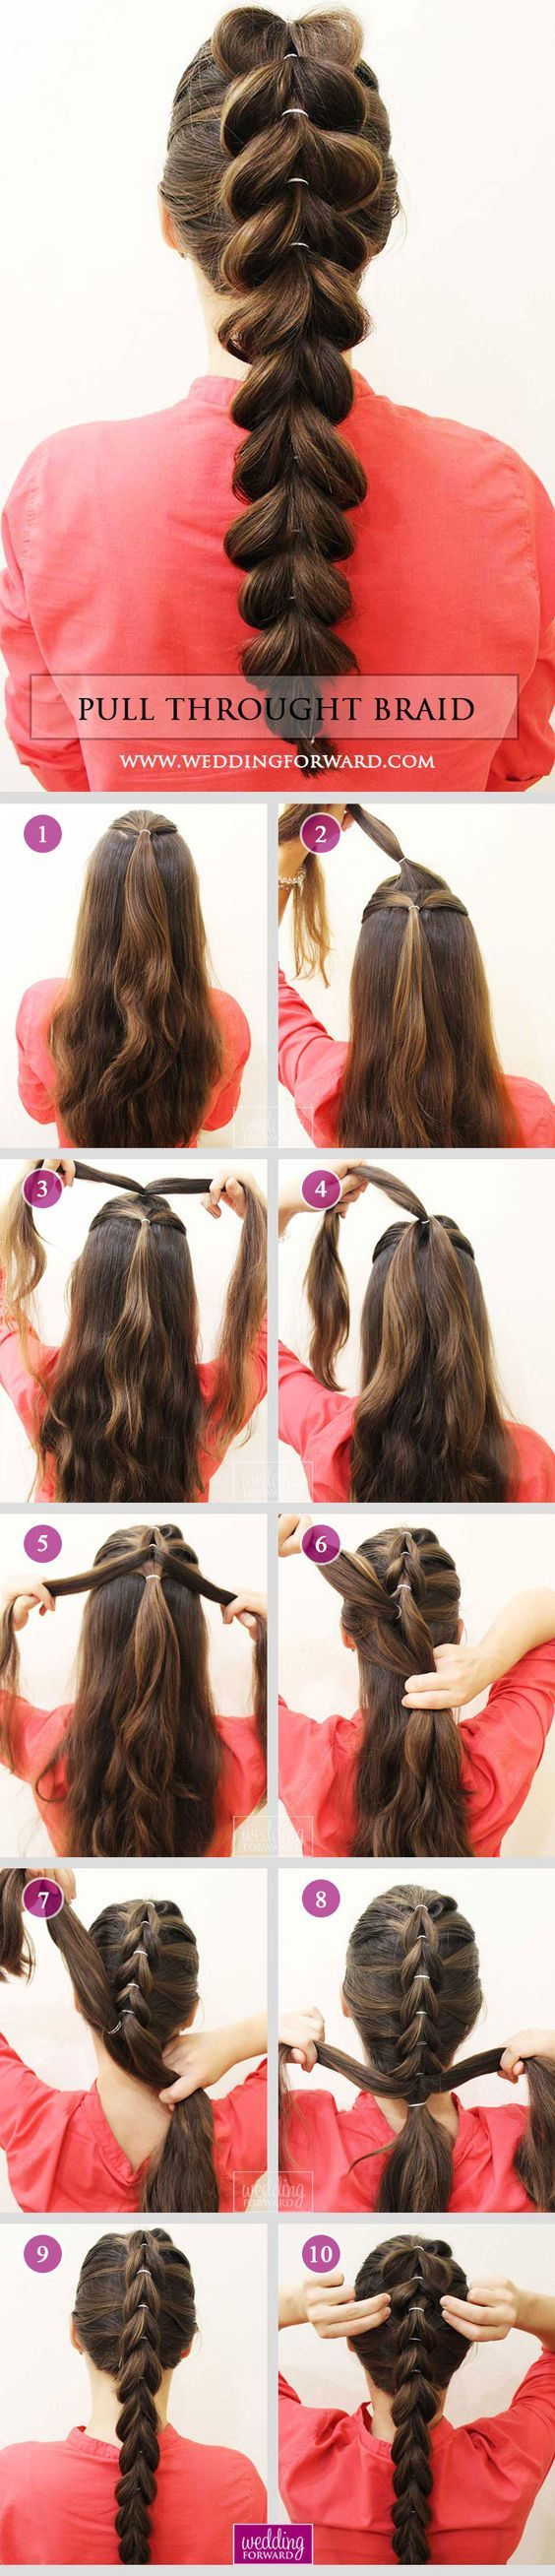 best images about hair styles on pinterest halo office